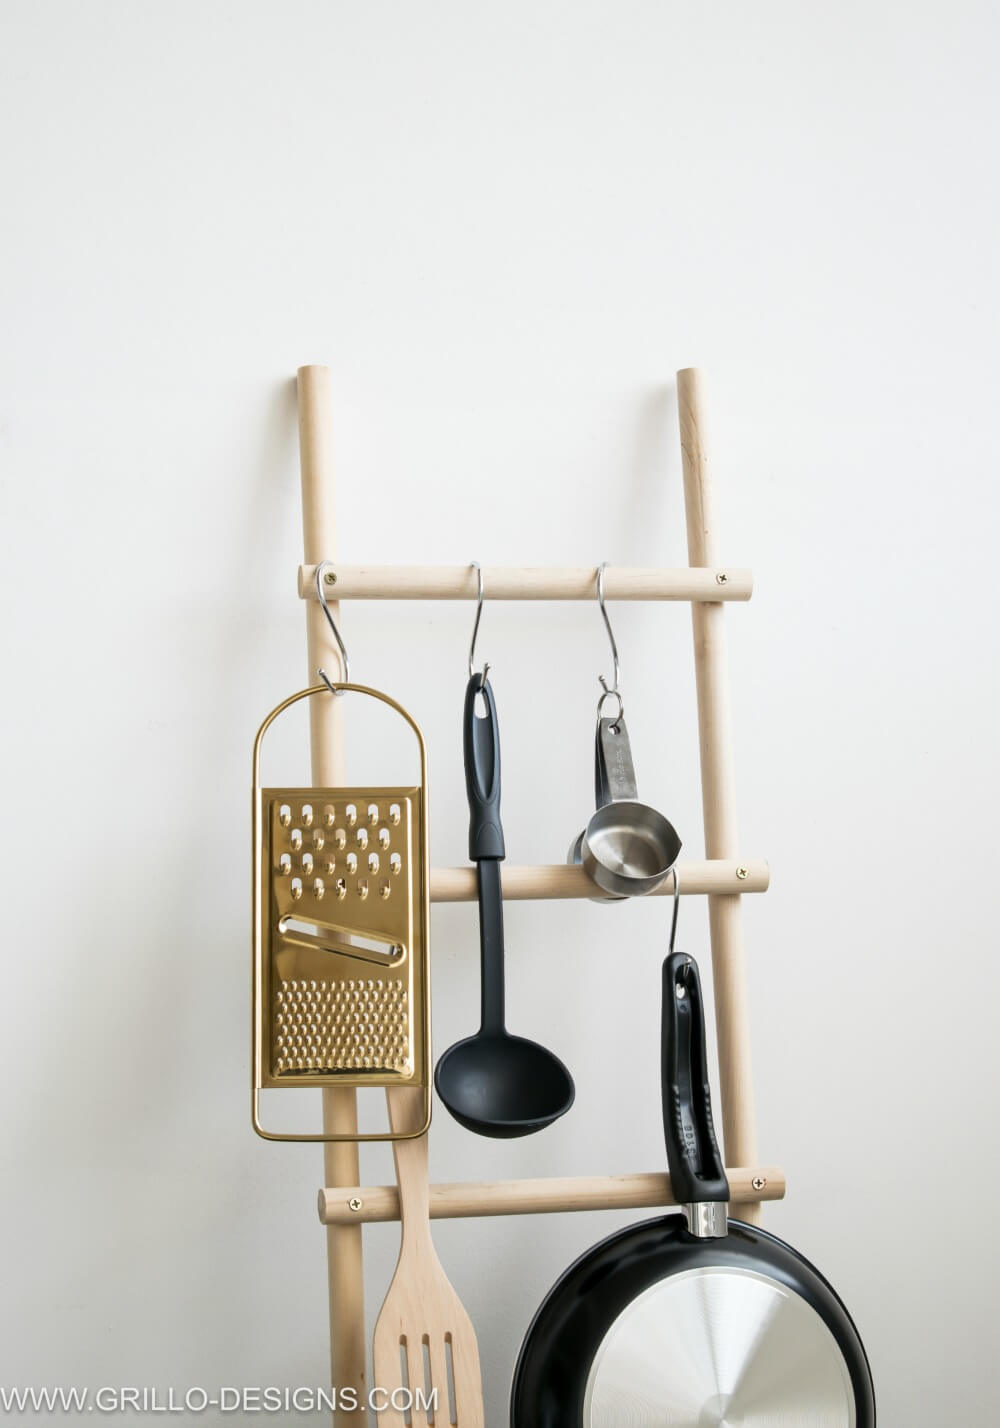 MODERN POT RACK USING WOODEN DOWELS / GRILLO DESIGNS